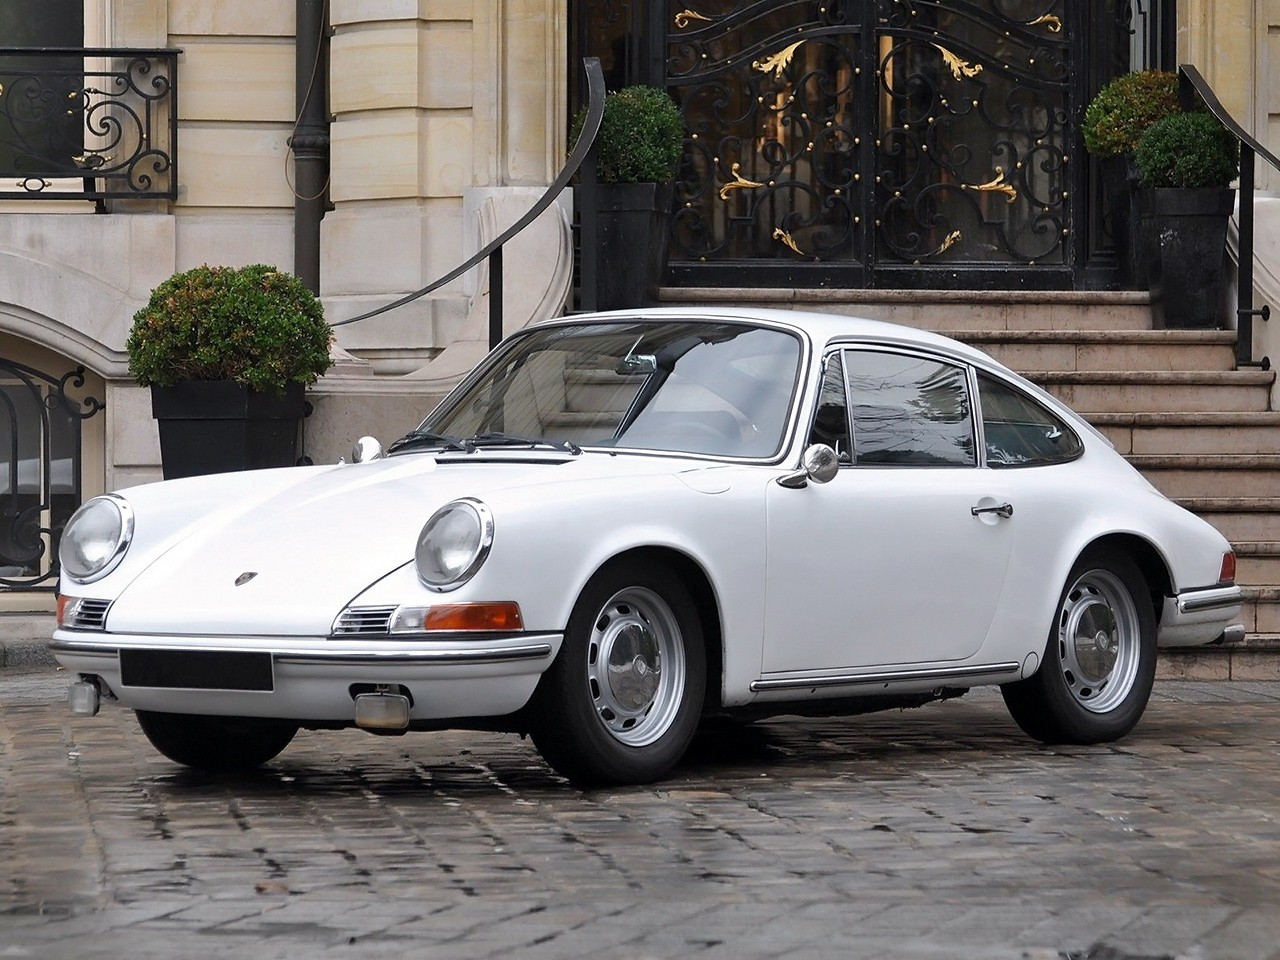 The Porsche 912 Turns 50 In 2016 Gets A Nice Anniversary